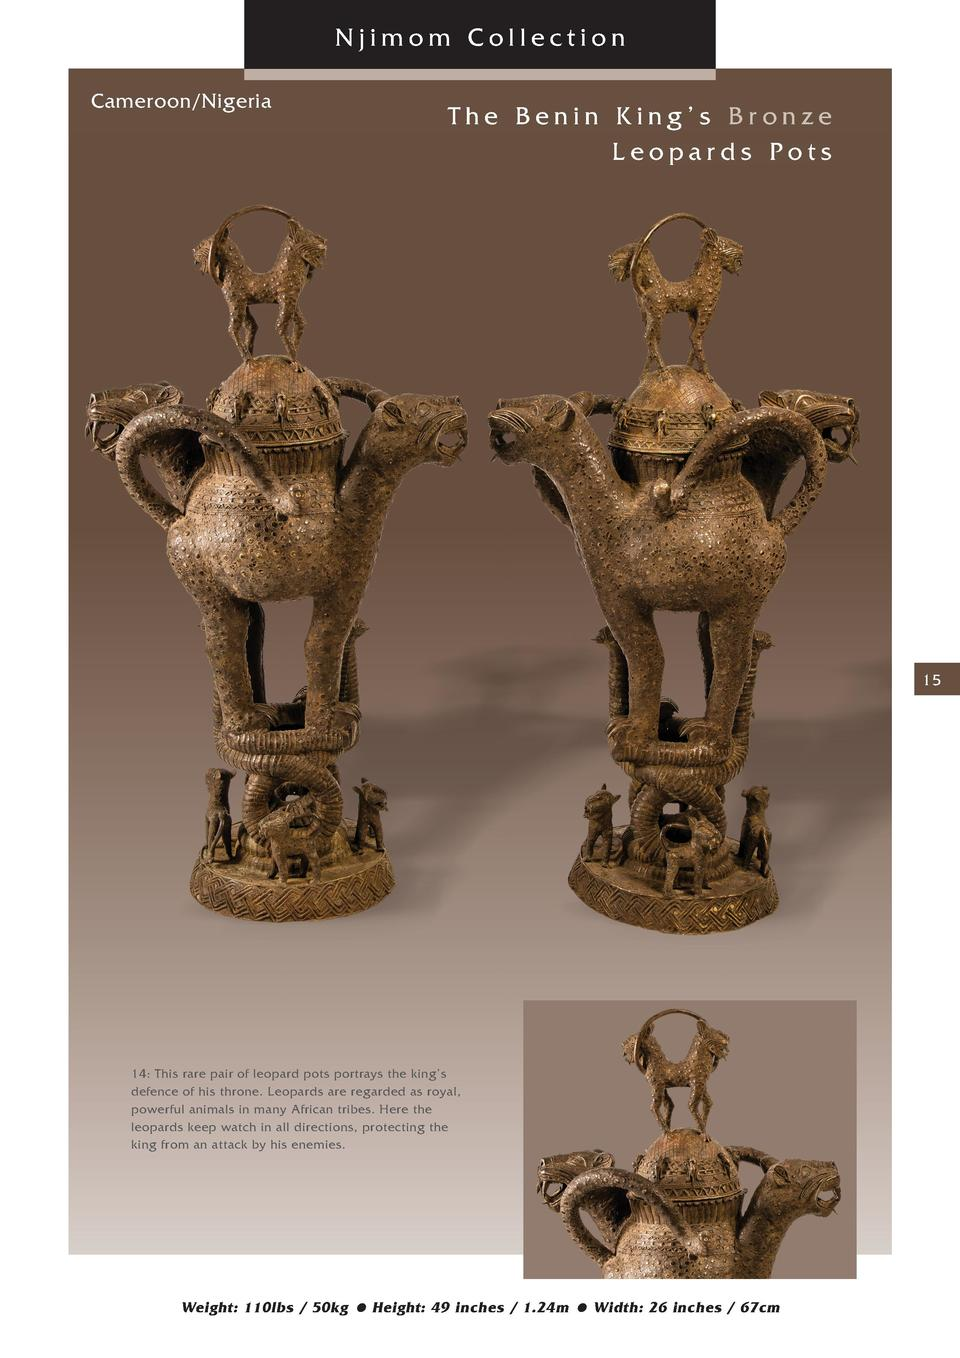 Njimom Collection Cameroon Nigeria  The Benin King   s Bronze Leopards Pots  15  14  This rare pair of leopard pots portra...